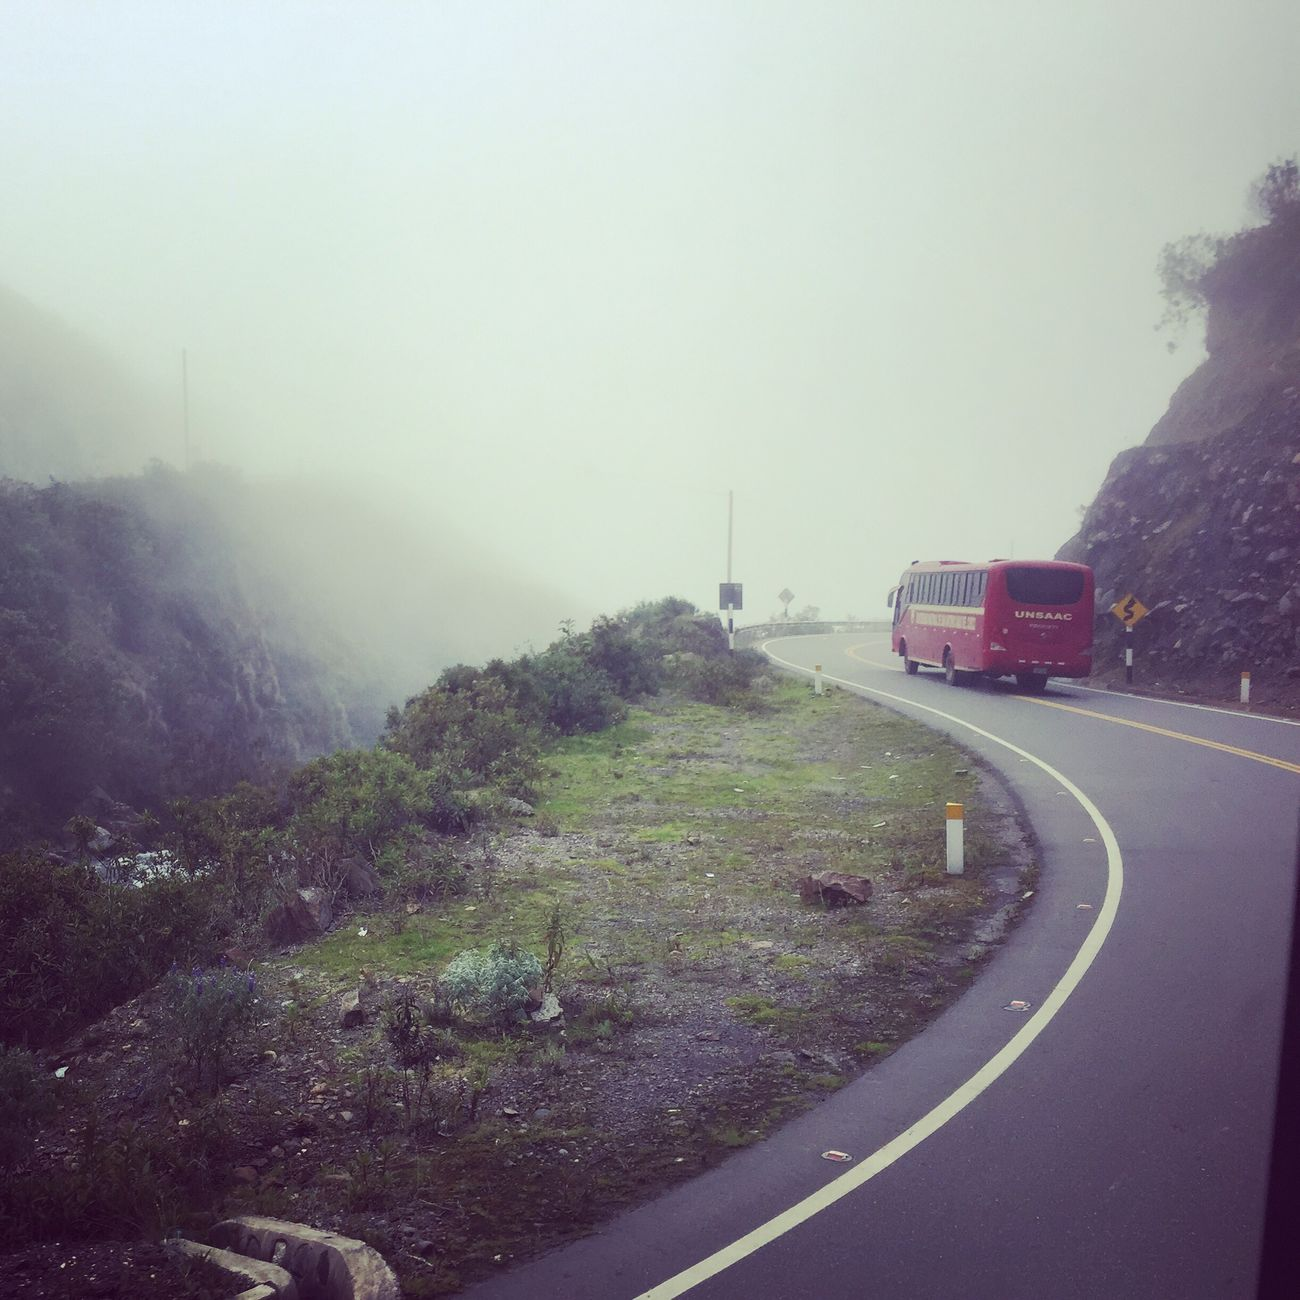 Rumbo a quince mil Unsaac Pista Neblina Bus First Eyeem Photo